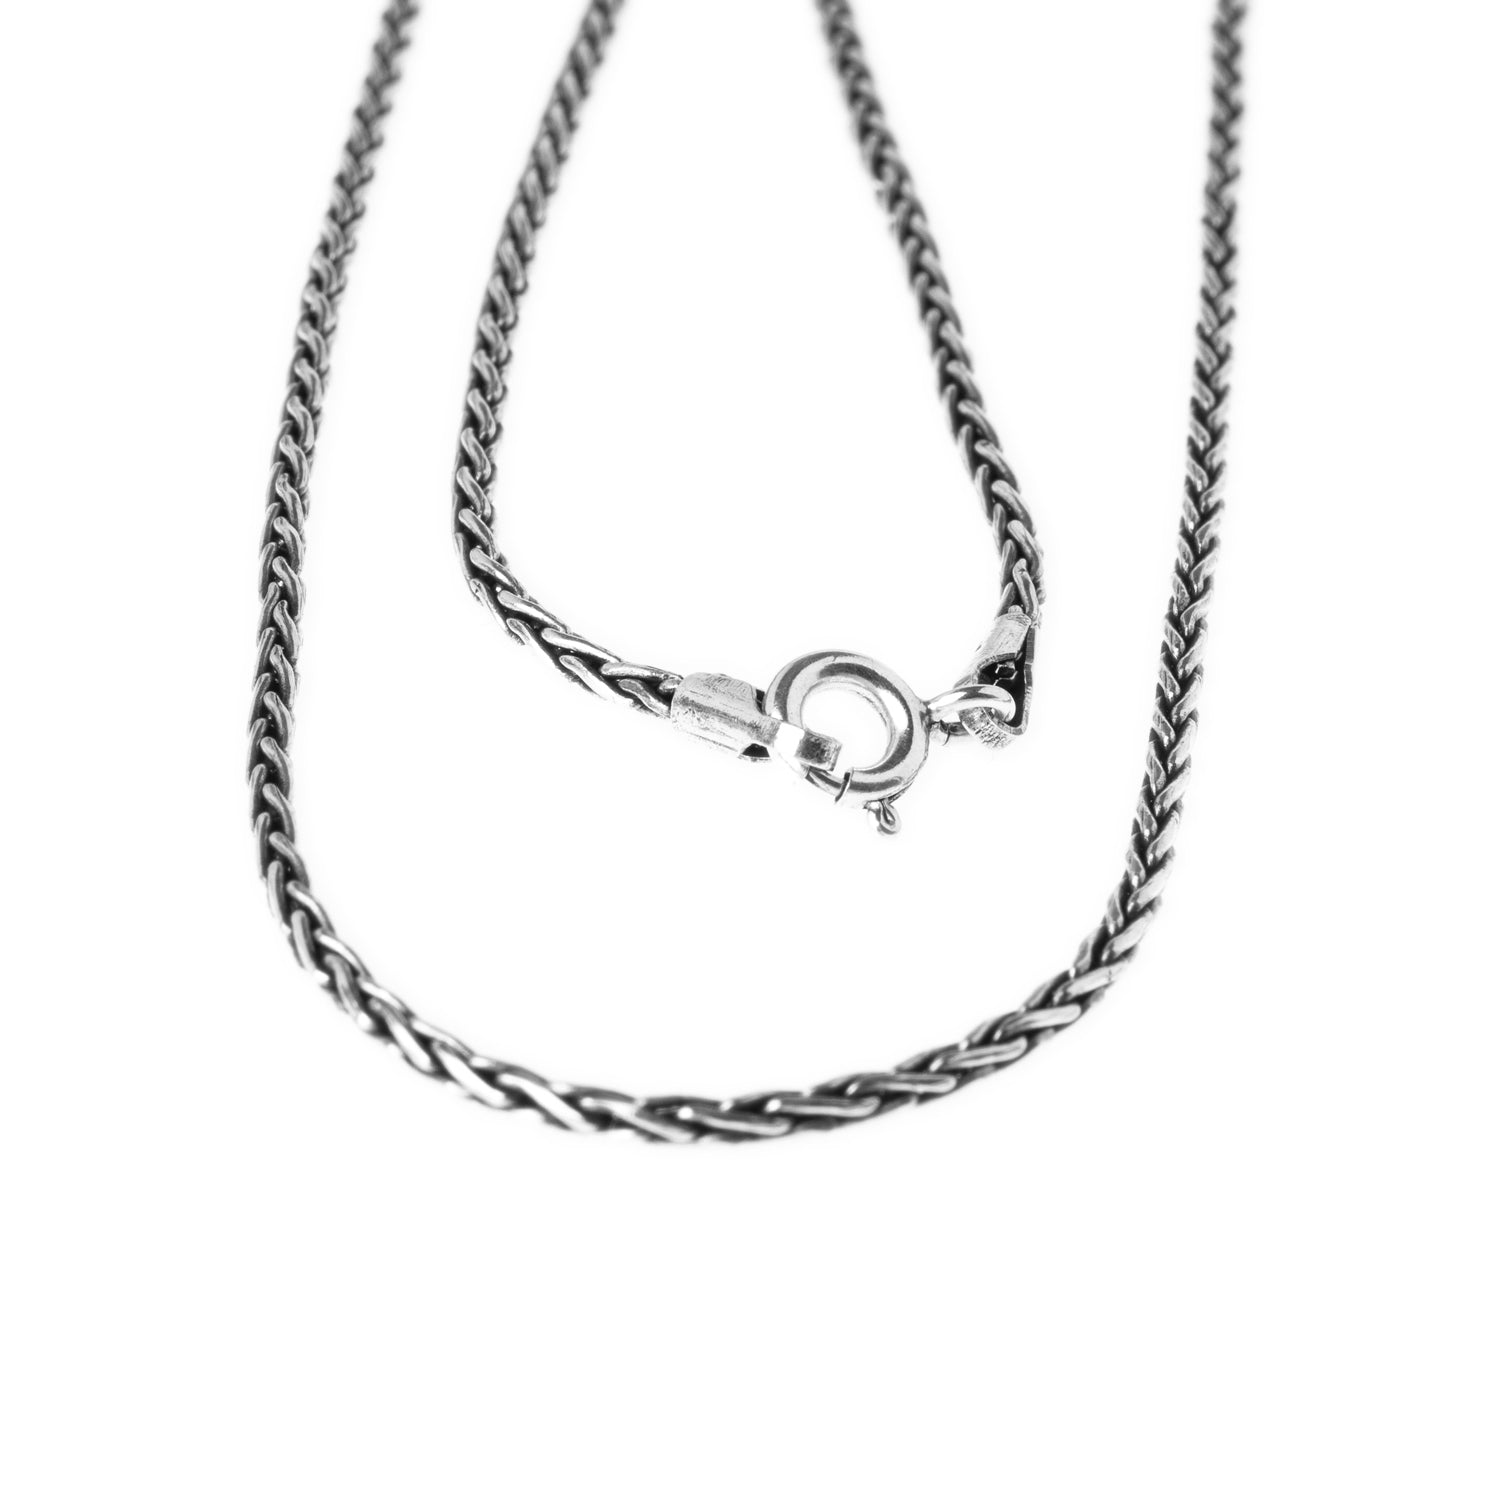 Sterling Silver Spiga Chain with Ring Clasp C-794718